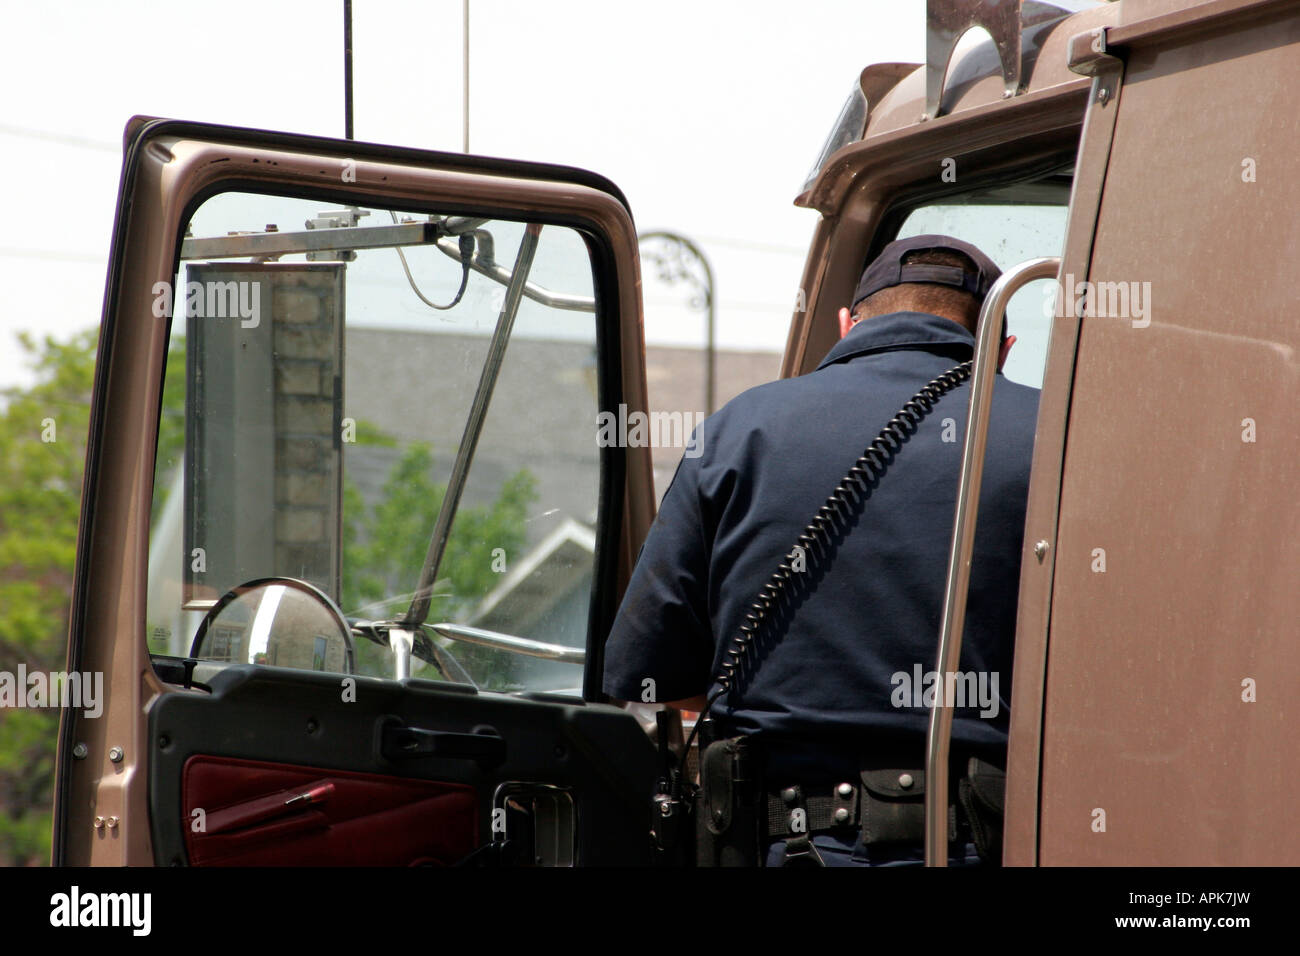 The police gathering information for a report on a traffic accident from the driver of the semi big rig trailer - Stock Image